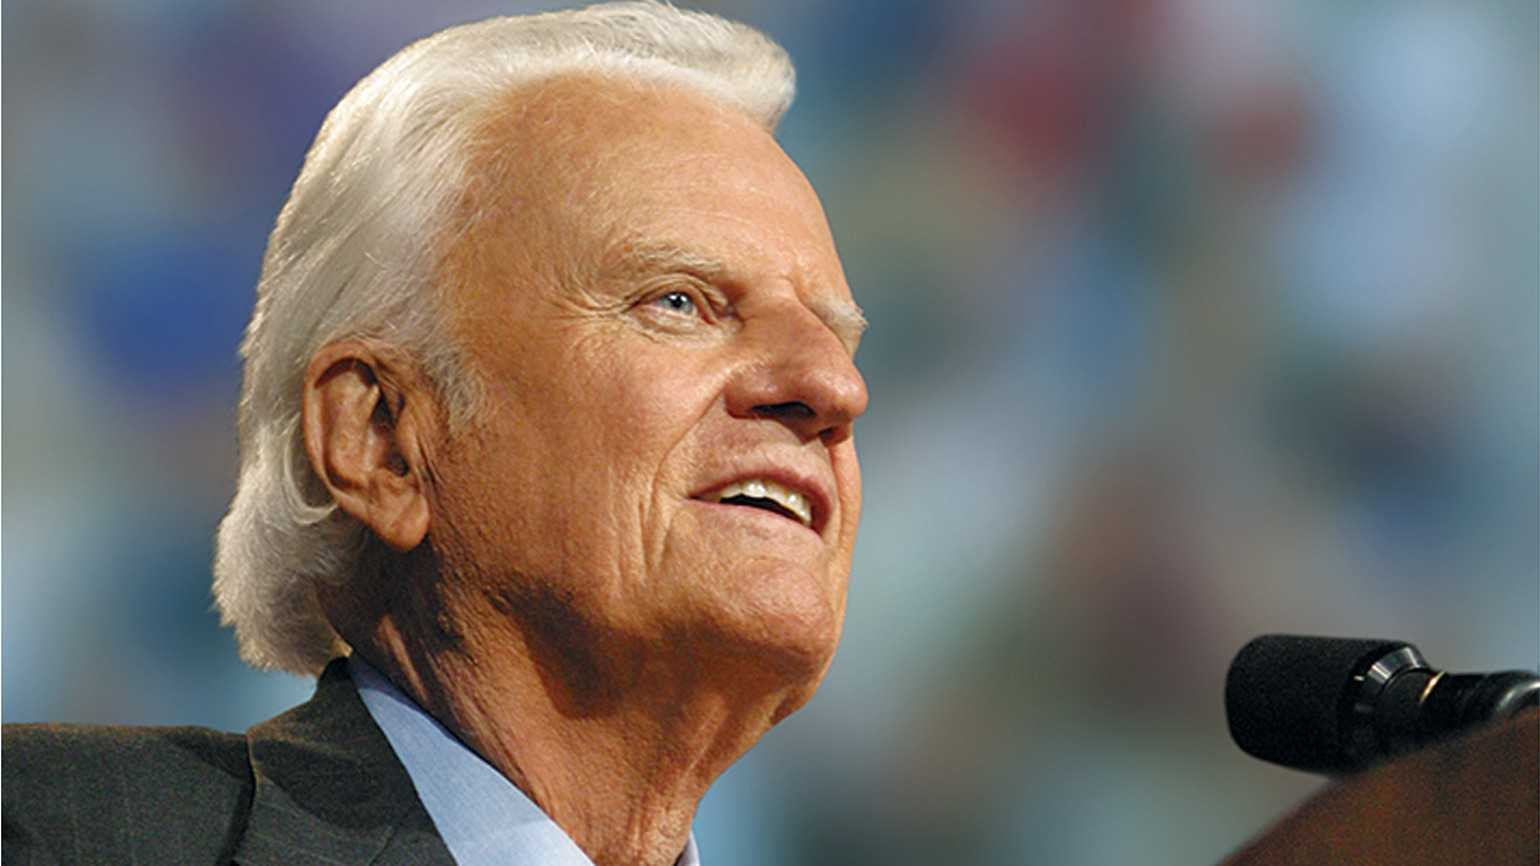 Billy Graham speaking to an audience